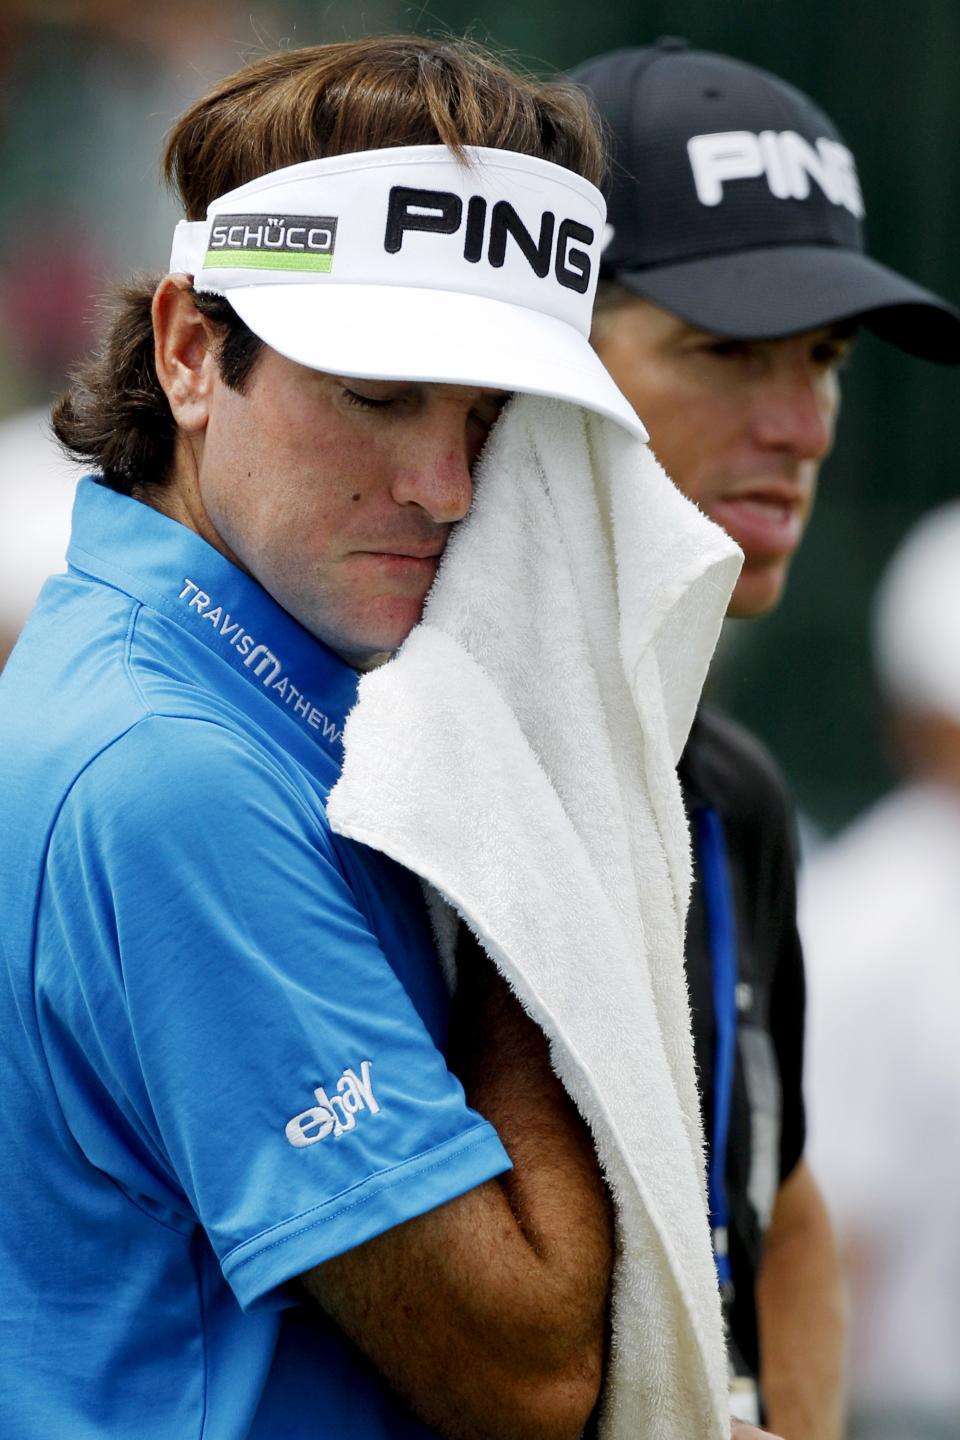 Bubba Watson towels off on the driving range during a practice round for the PGA Championship golf tournament on the Ocean Course of the Kiawah Island Golf Resort in Kiawah Island, S.C., Wednesday, Aug. 8, 2012. (AP Photo/Lynne Sladky)